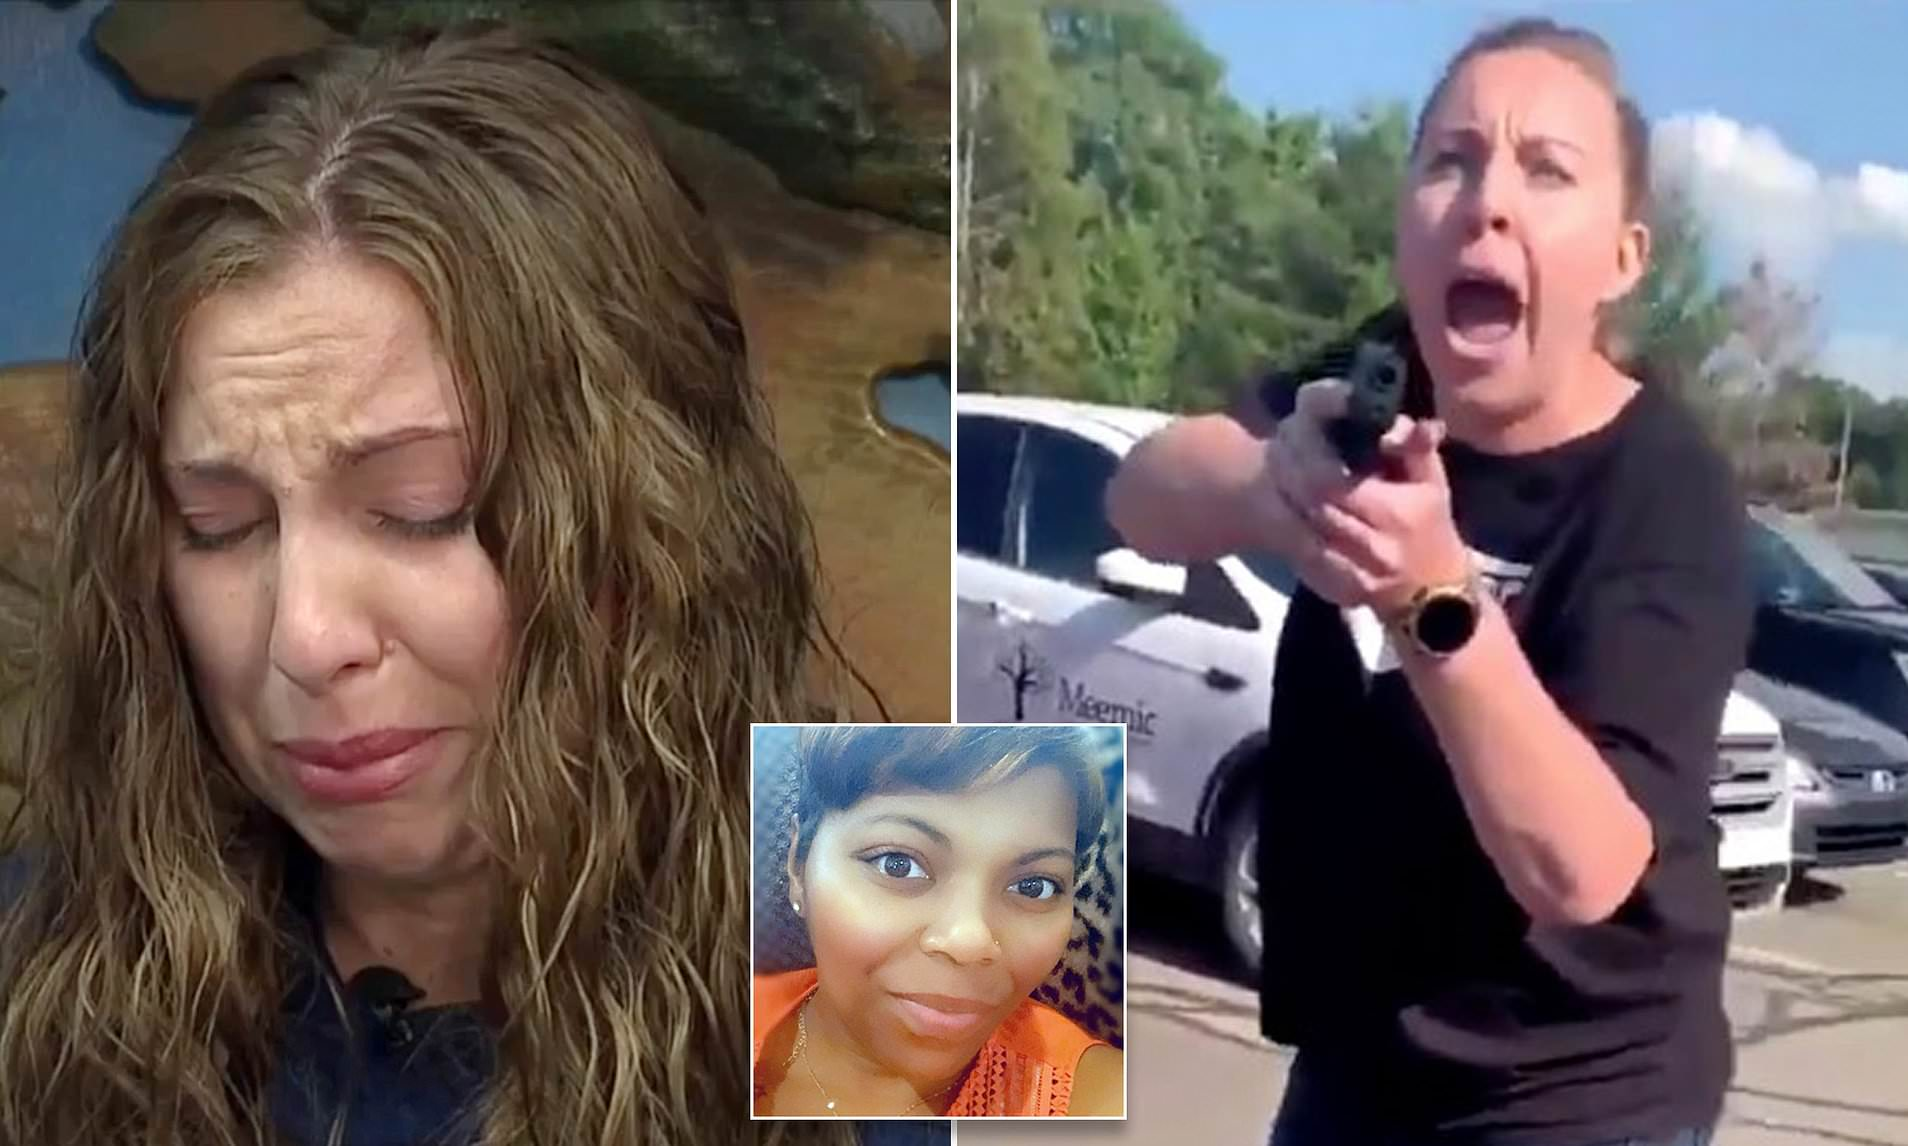 Michigan couple who pulled a firearm on Black family state they confronted ''ethnic terrorizing''